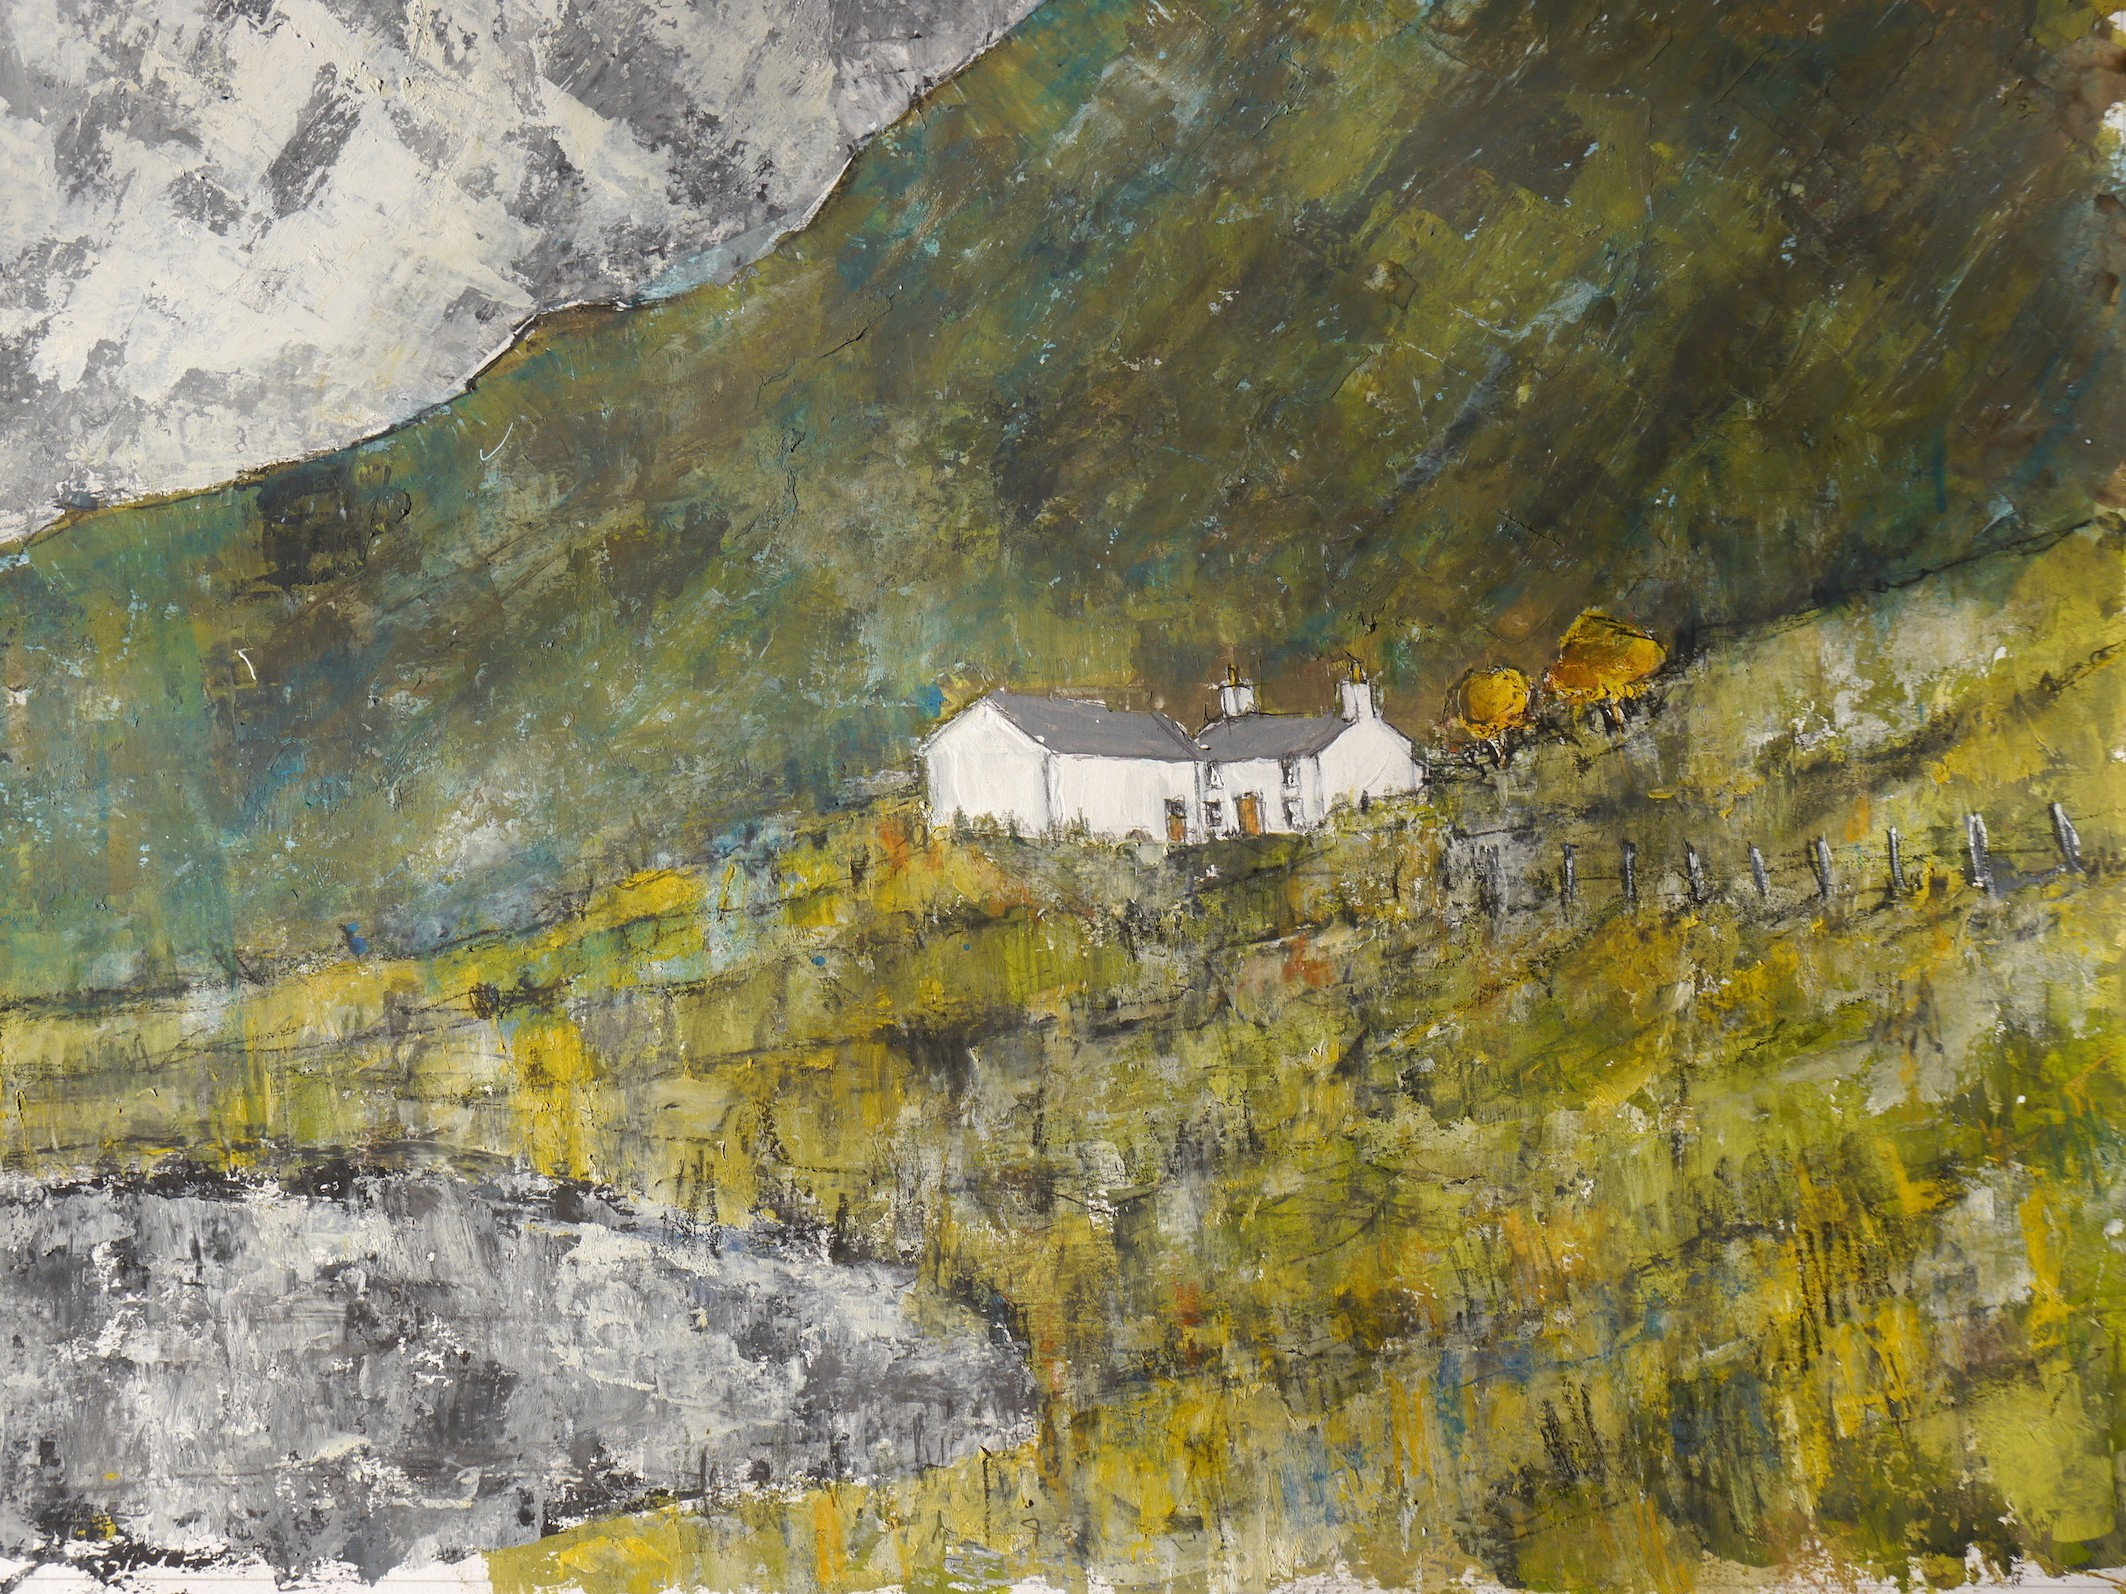 Near Capel Curig   50x70 cm   Acrylic on paper    UNMOUNTED AND UNFRAMED